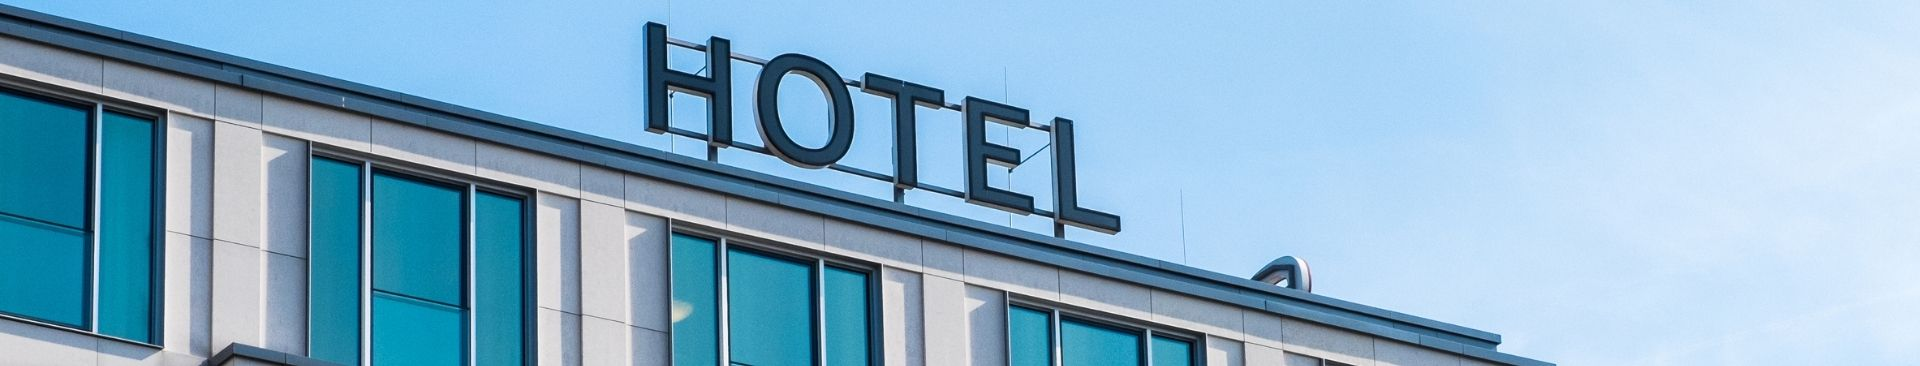 hotel sign on building